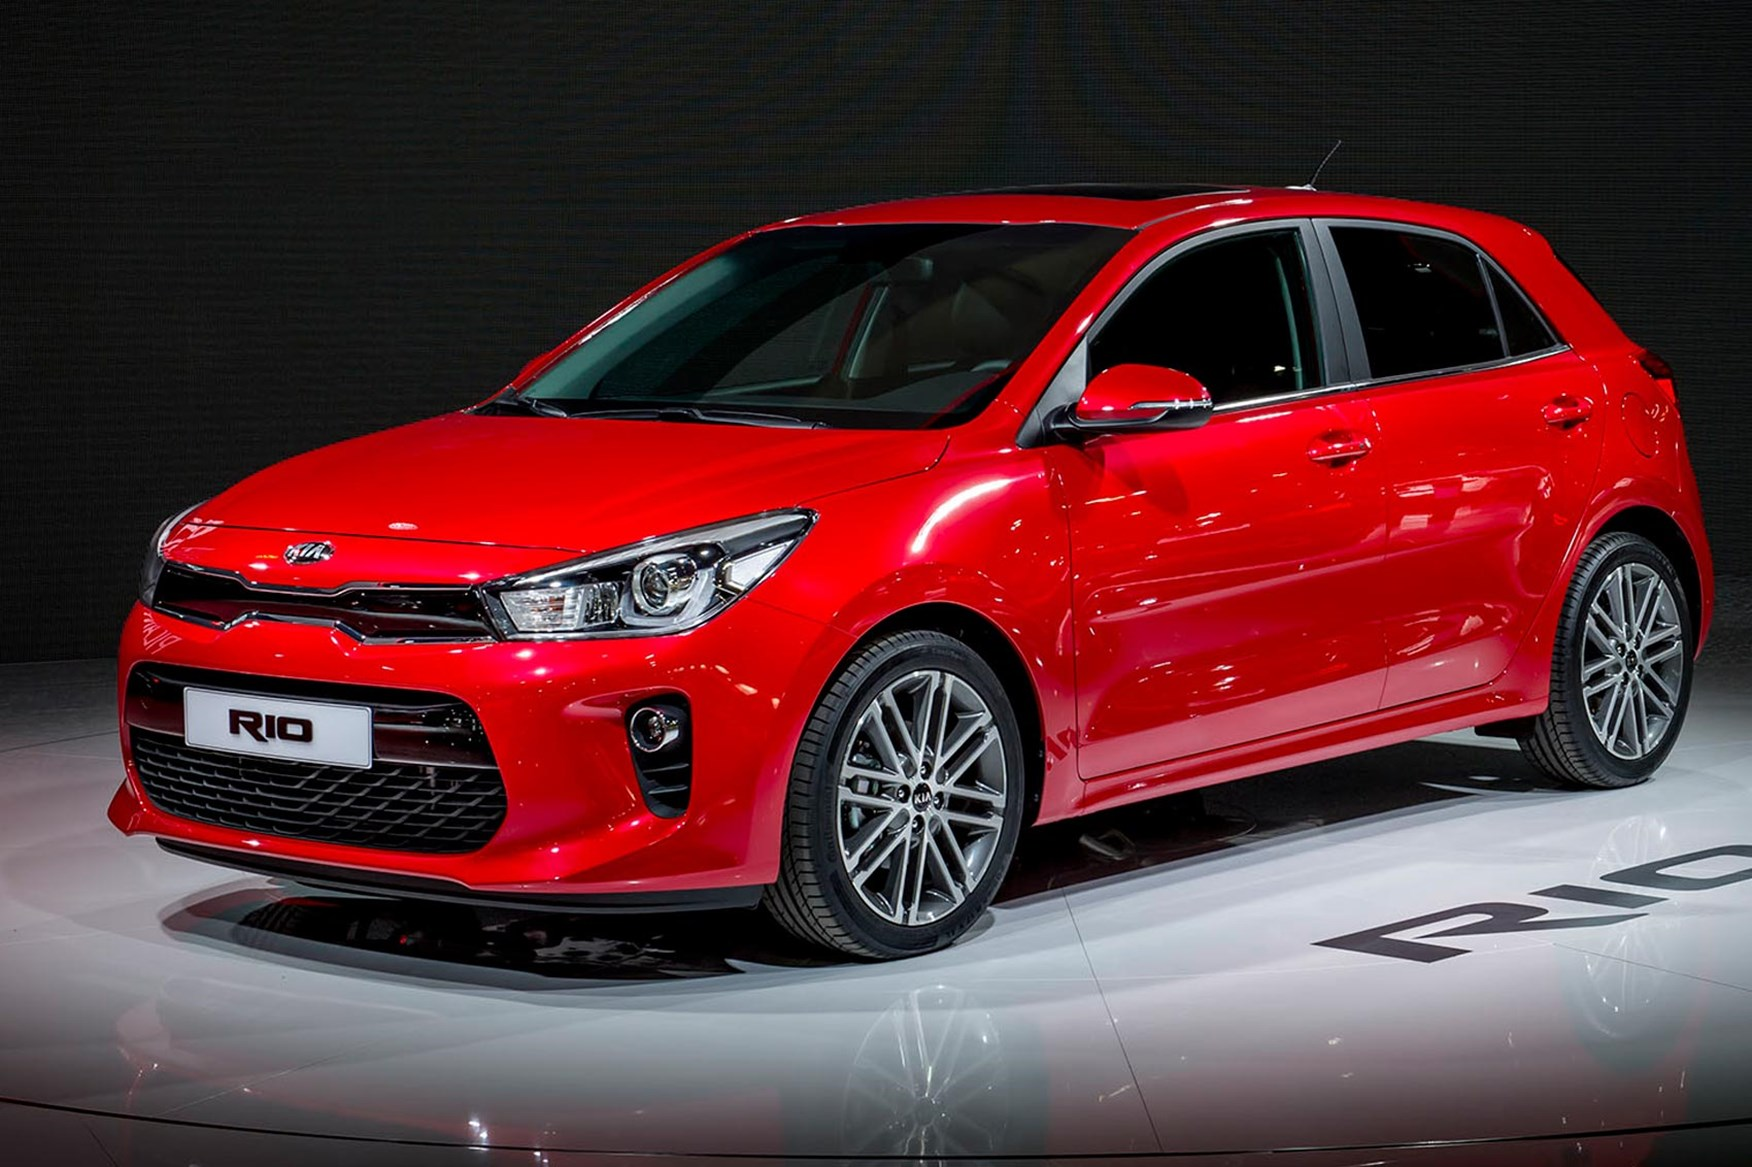 2017 Kia Rio Red | 200+ Interior and Exterior Images